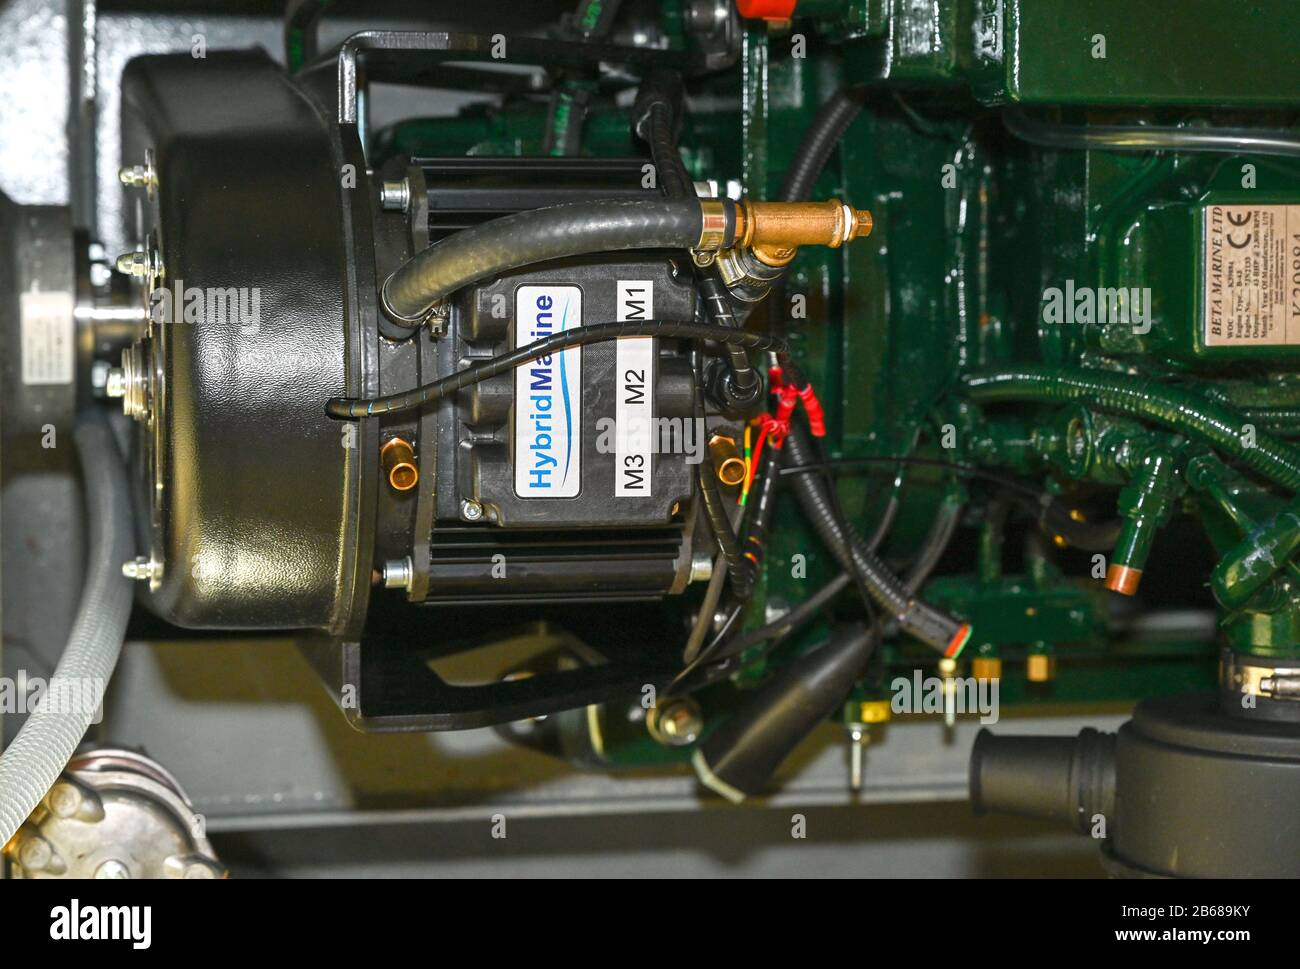 Looking down into the engine bay at a new Hybrid Marine unit fitted to a new diesel engine fitted in a narrowboat on the UK waterways. Stock Photo